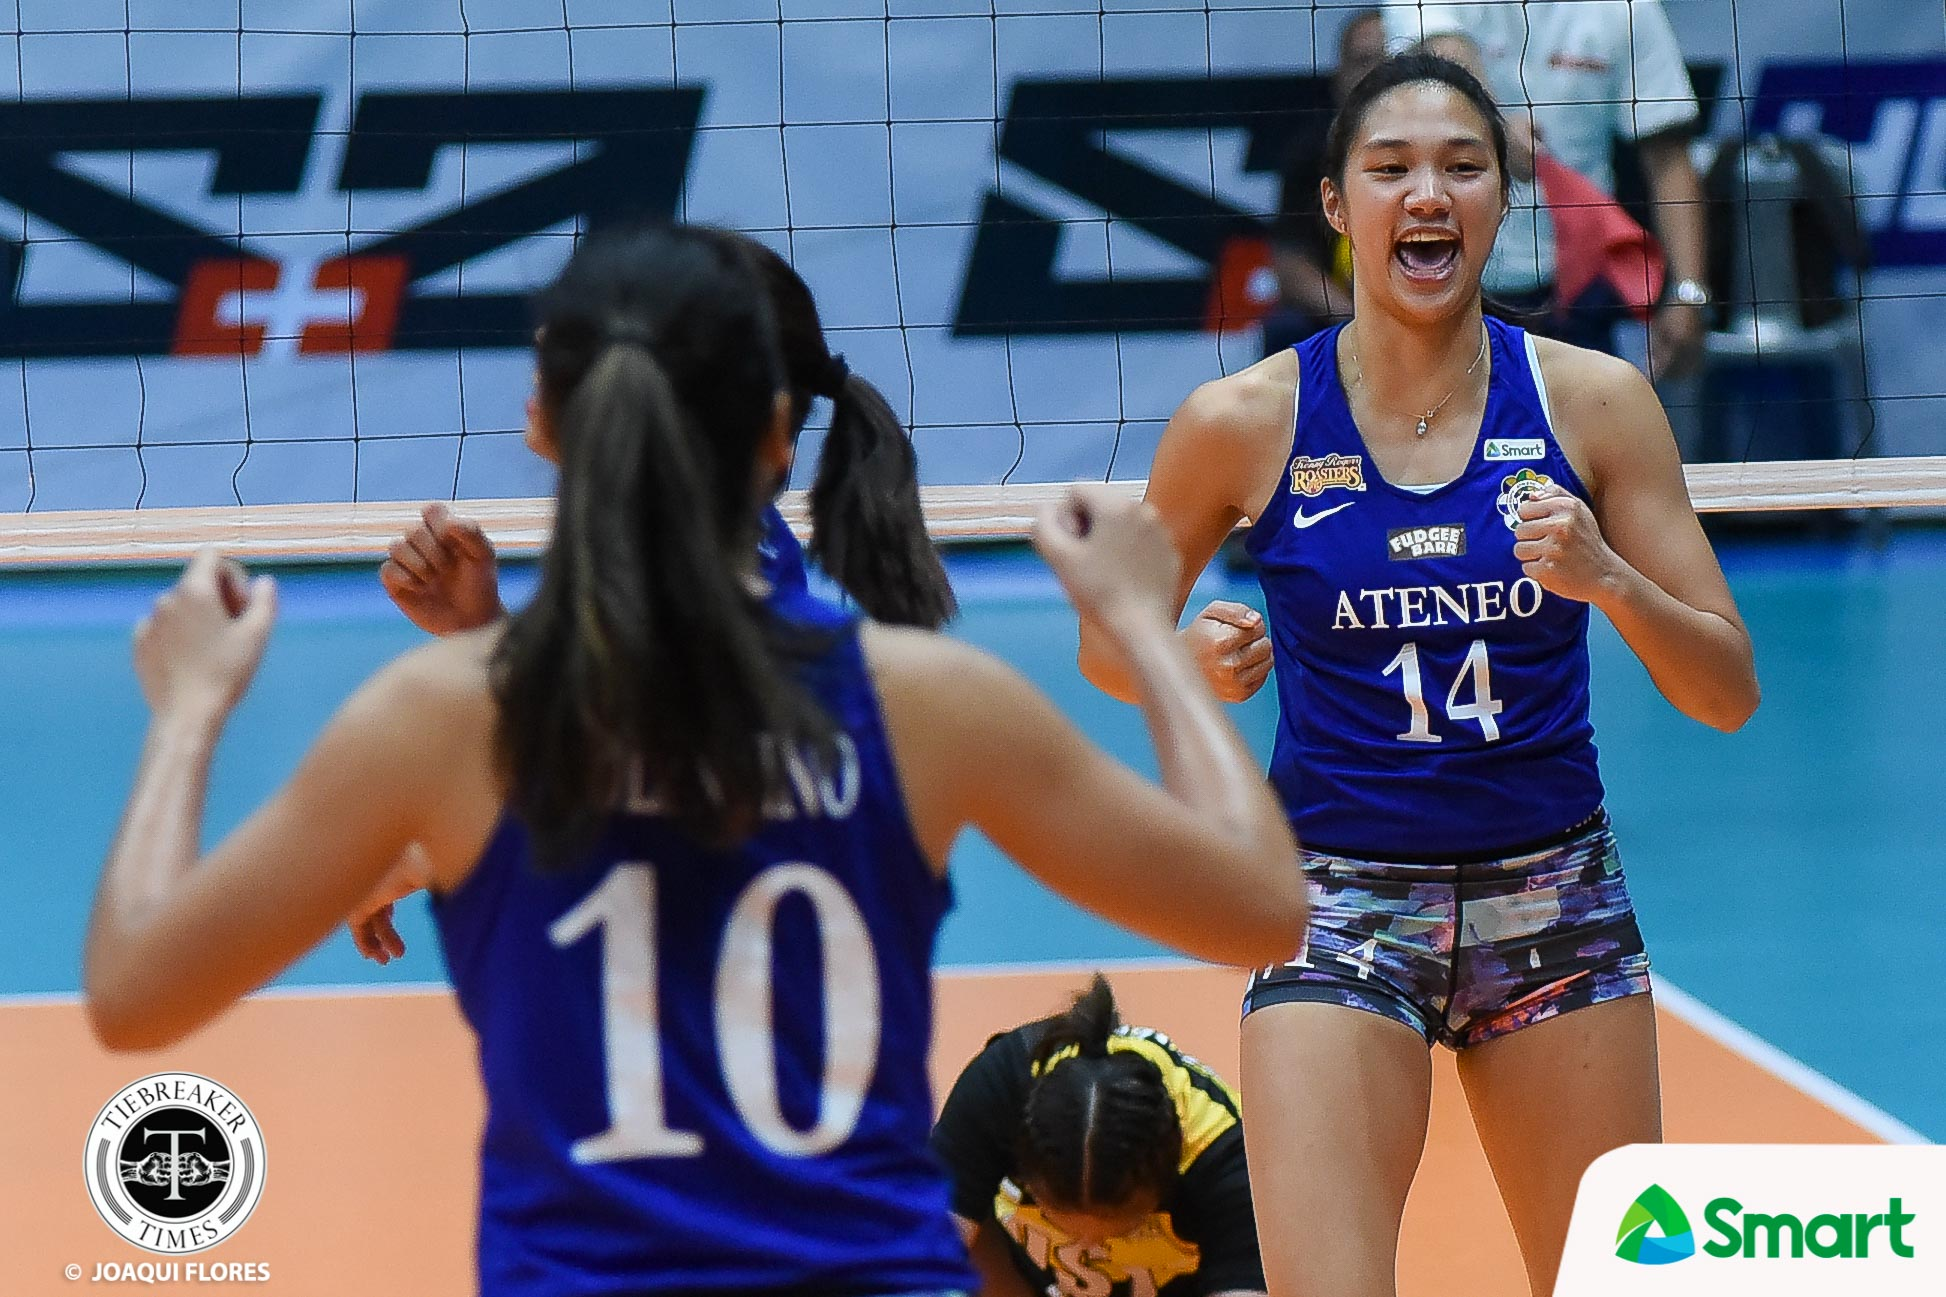 Tiebreaker Times Ateneo official says it was players decision not to attend National Team tryout ADMU News UAAP Volleyball  UAAP Season 80 Women's Volleyball UAAP Season 80 Sherwin Malonzo Maddie Madayag Kat Tolentino Bea De Leon Ateneo Women's Volleyball 2018 Asian Games-Volleyball